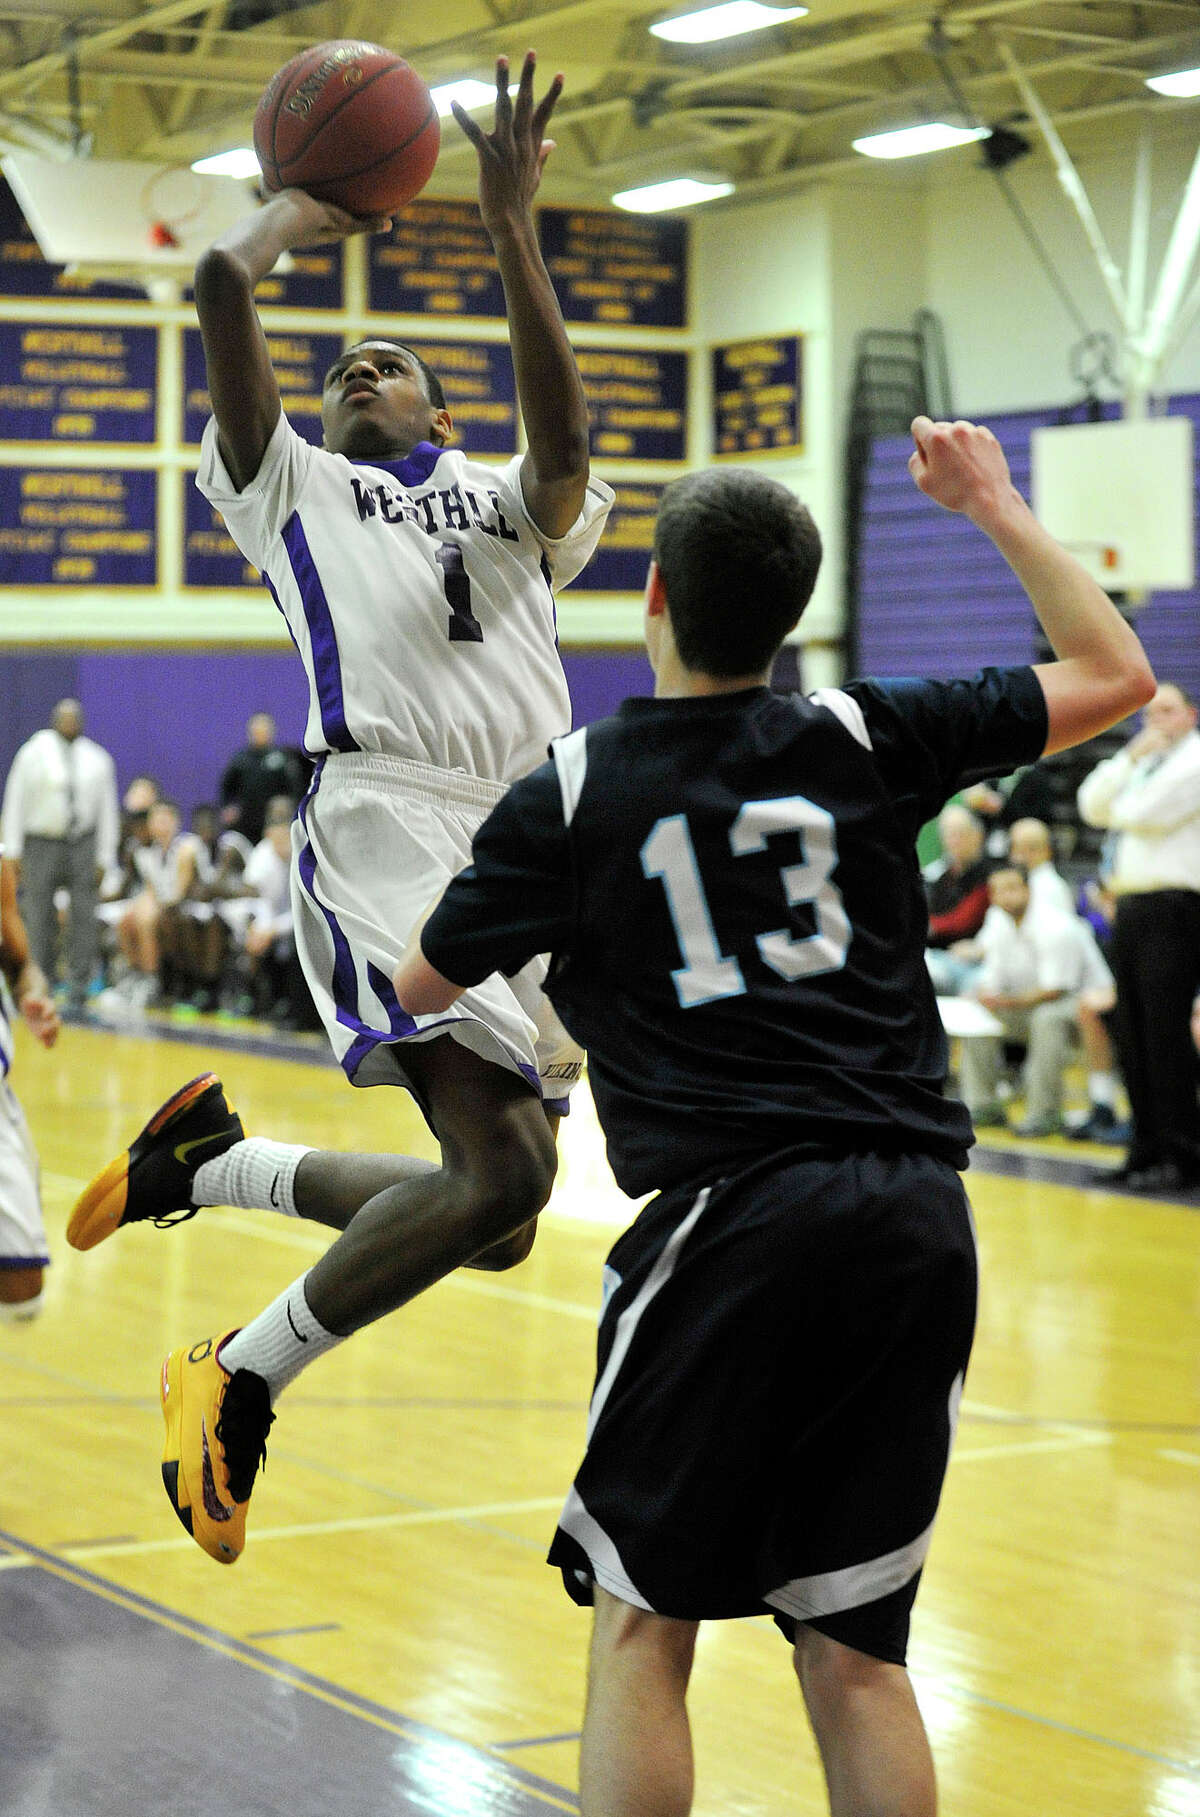 Westhill's Jeremiah Livingston leaps to shoot over Wilton's Matthew Shifrin during their basketball game at Westhill High School in Stamford, Conn., on Monday, Jan. 6, 2014. Westhill won, 51-43.